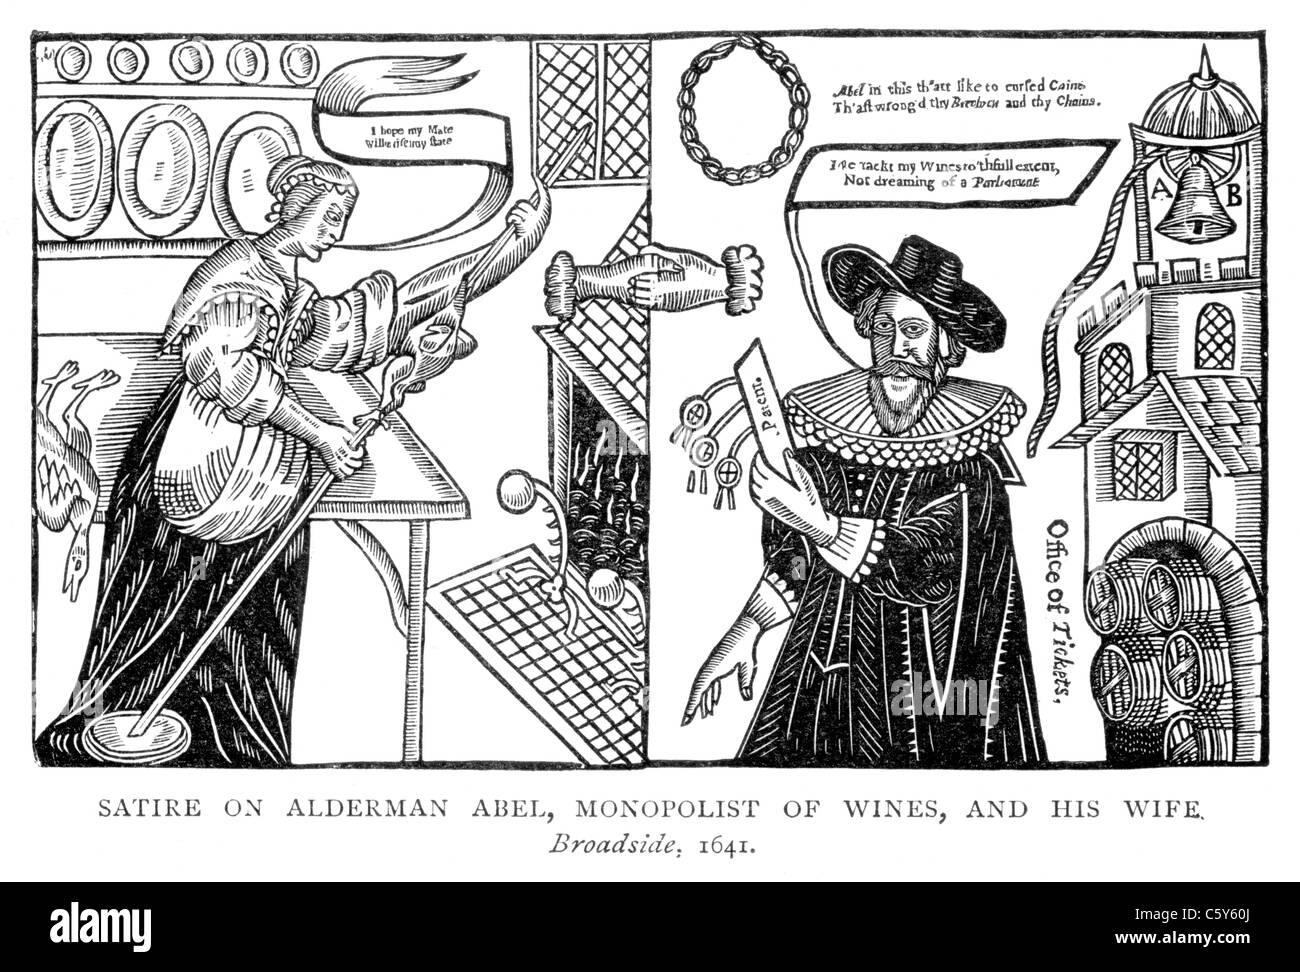 Satire on Alderman Abel, Monopolist of Wines and his Wife; Broadside 1641; Black and White Illustration; - Stock Image